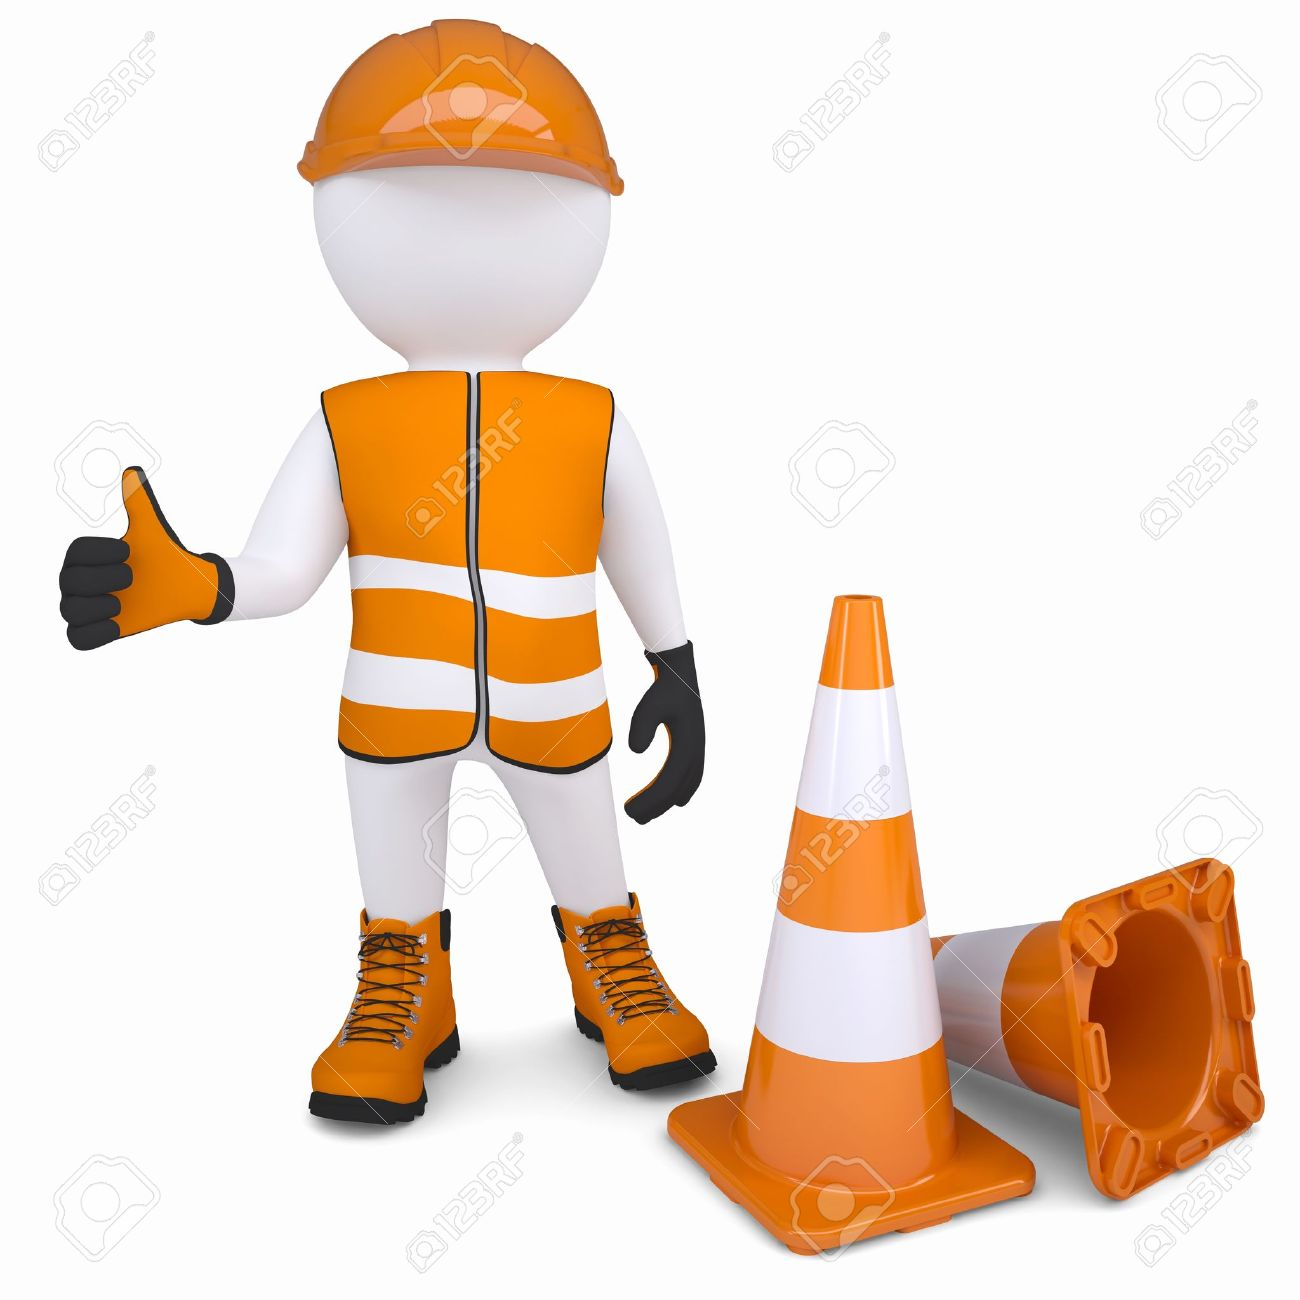 3d Man In Overalls Raised His Thumb Up Isolated Render On A White Background